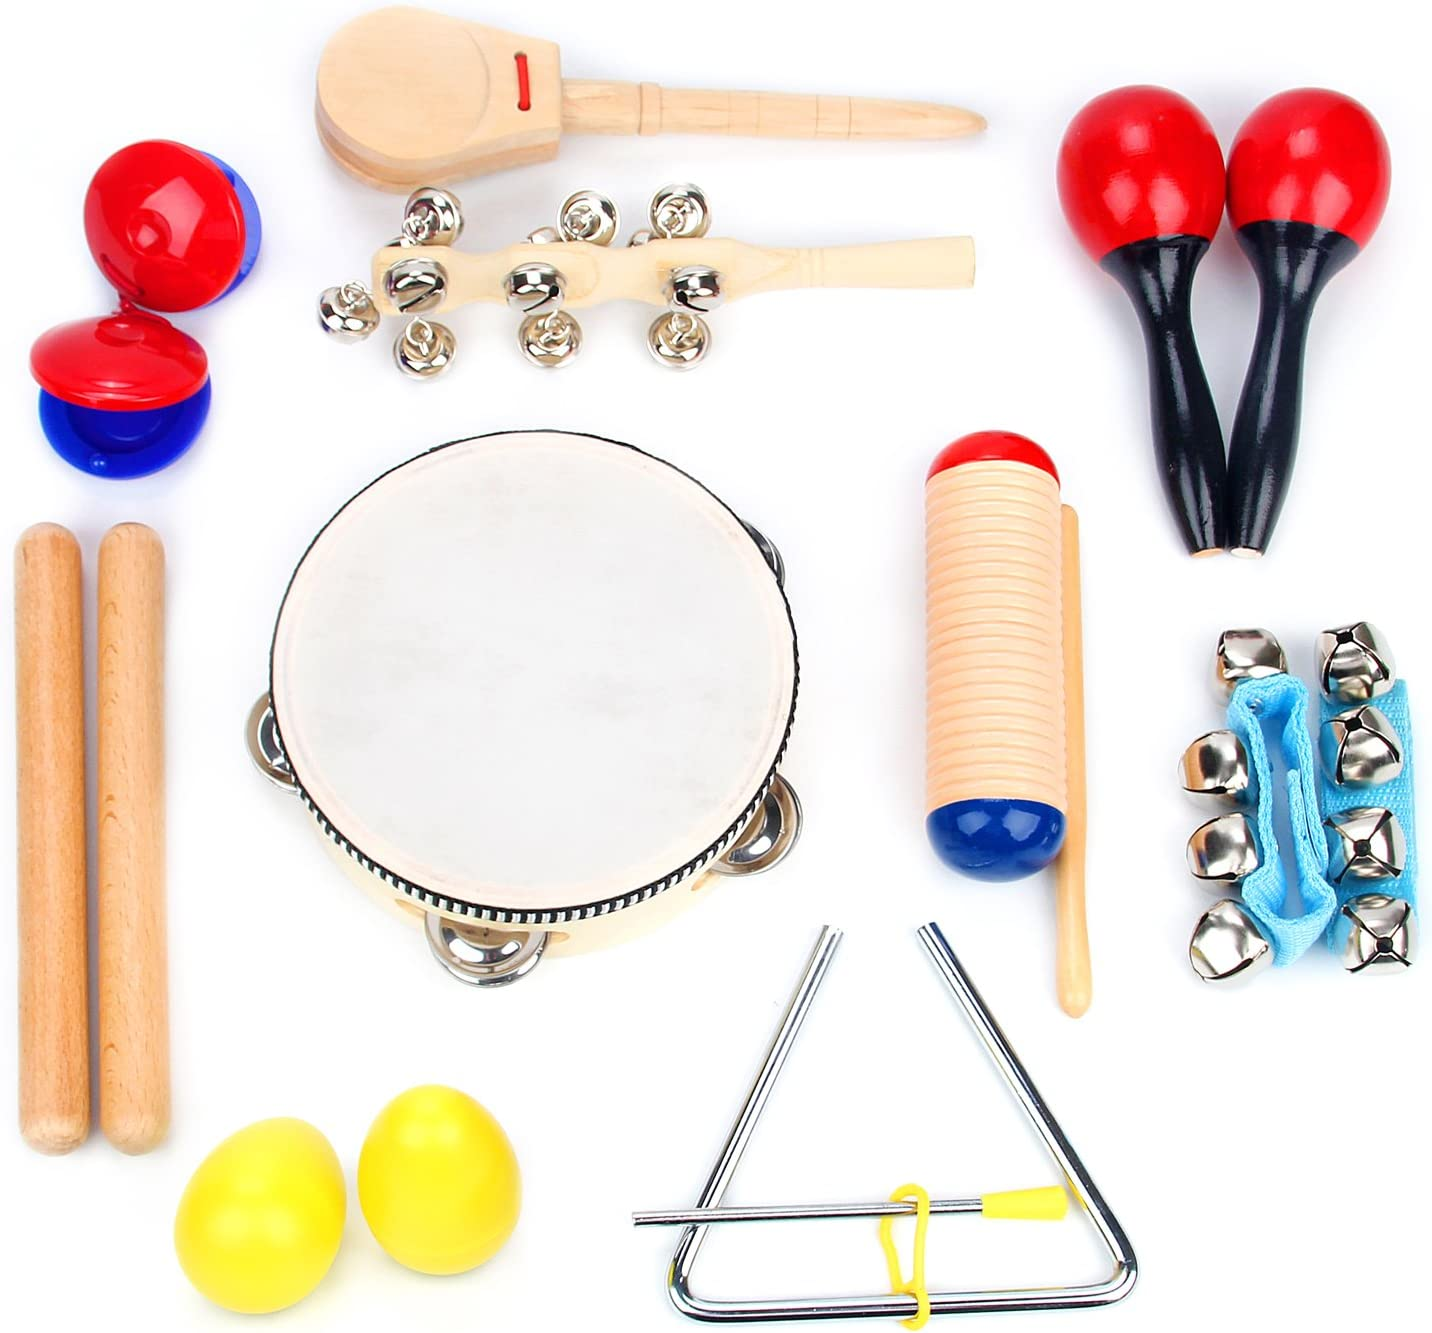 Boxiki kids Musical Instrument Set 18 PCS | Rhythm & Music Education Toys for Kids | Clave Sticks, Shakers, Tambourine, Wrist Bells & Maracas for Kids | Natural Toys with Carrying Case